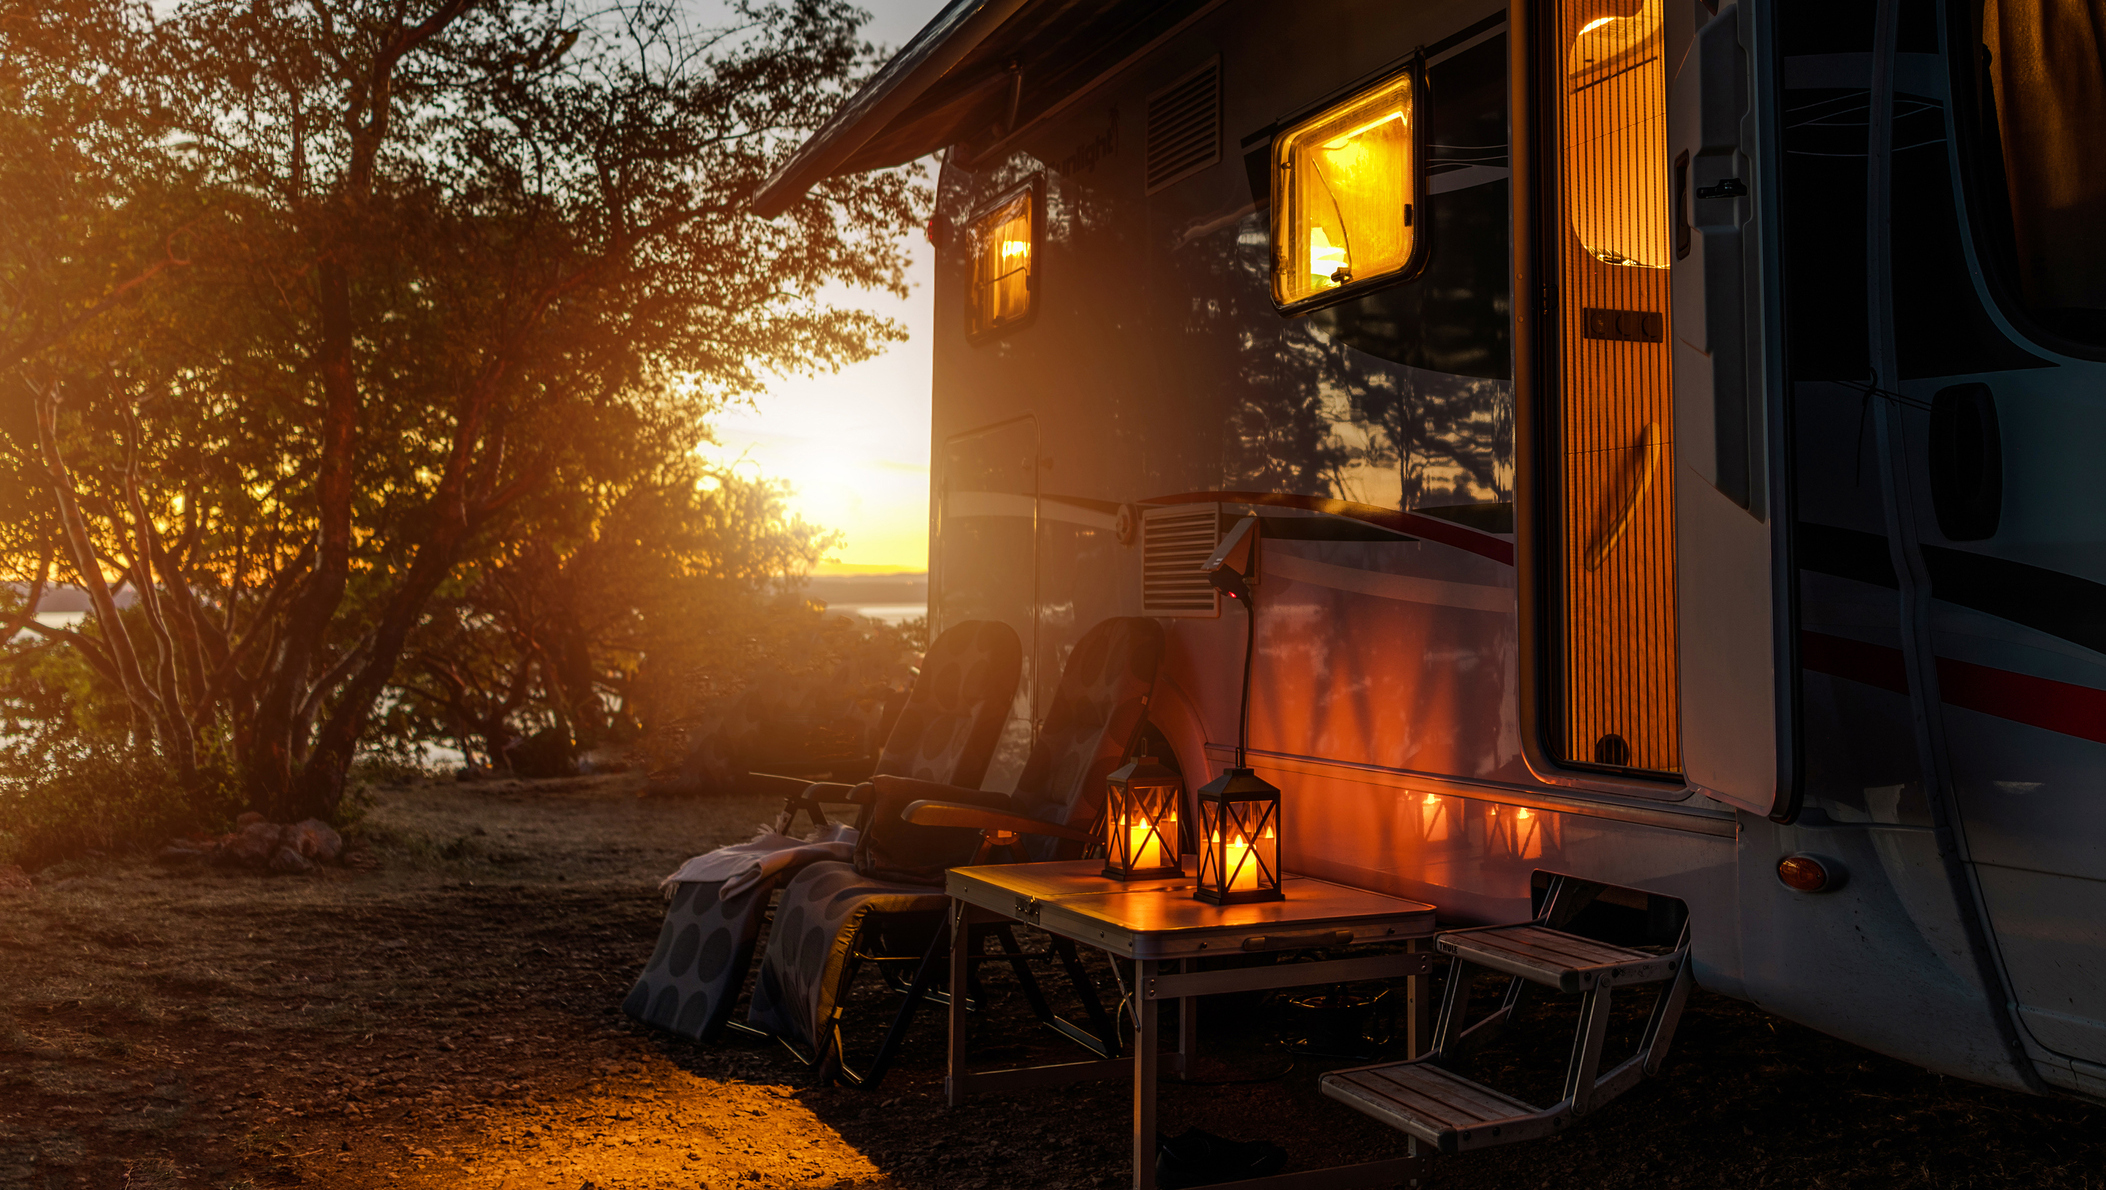 Practice good manners —An RV casts a welcoming glow onto a dusk campsite.